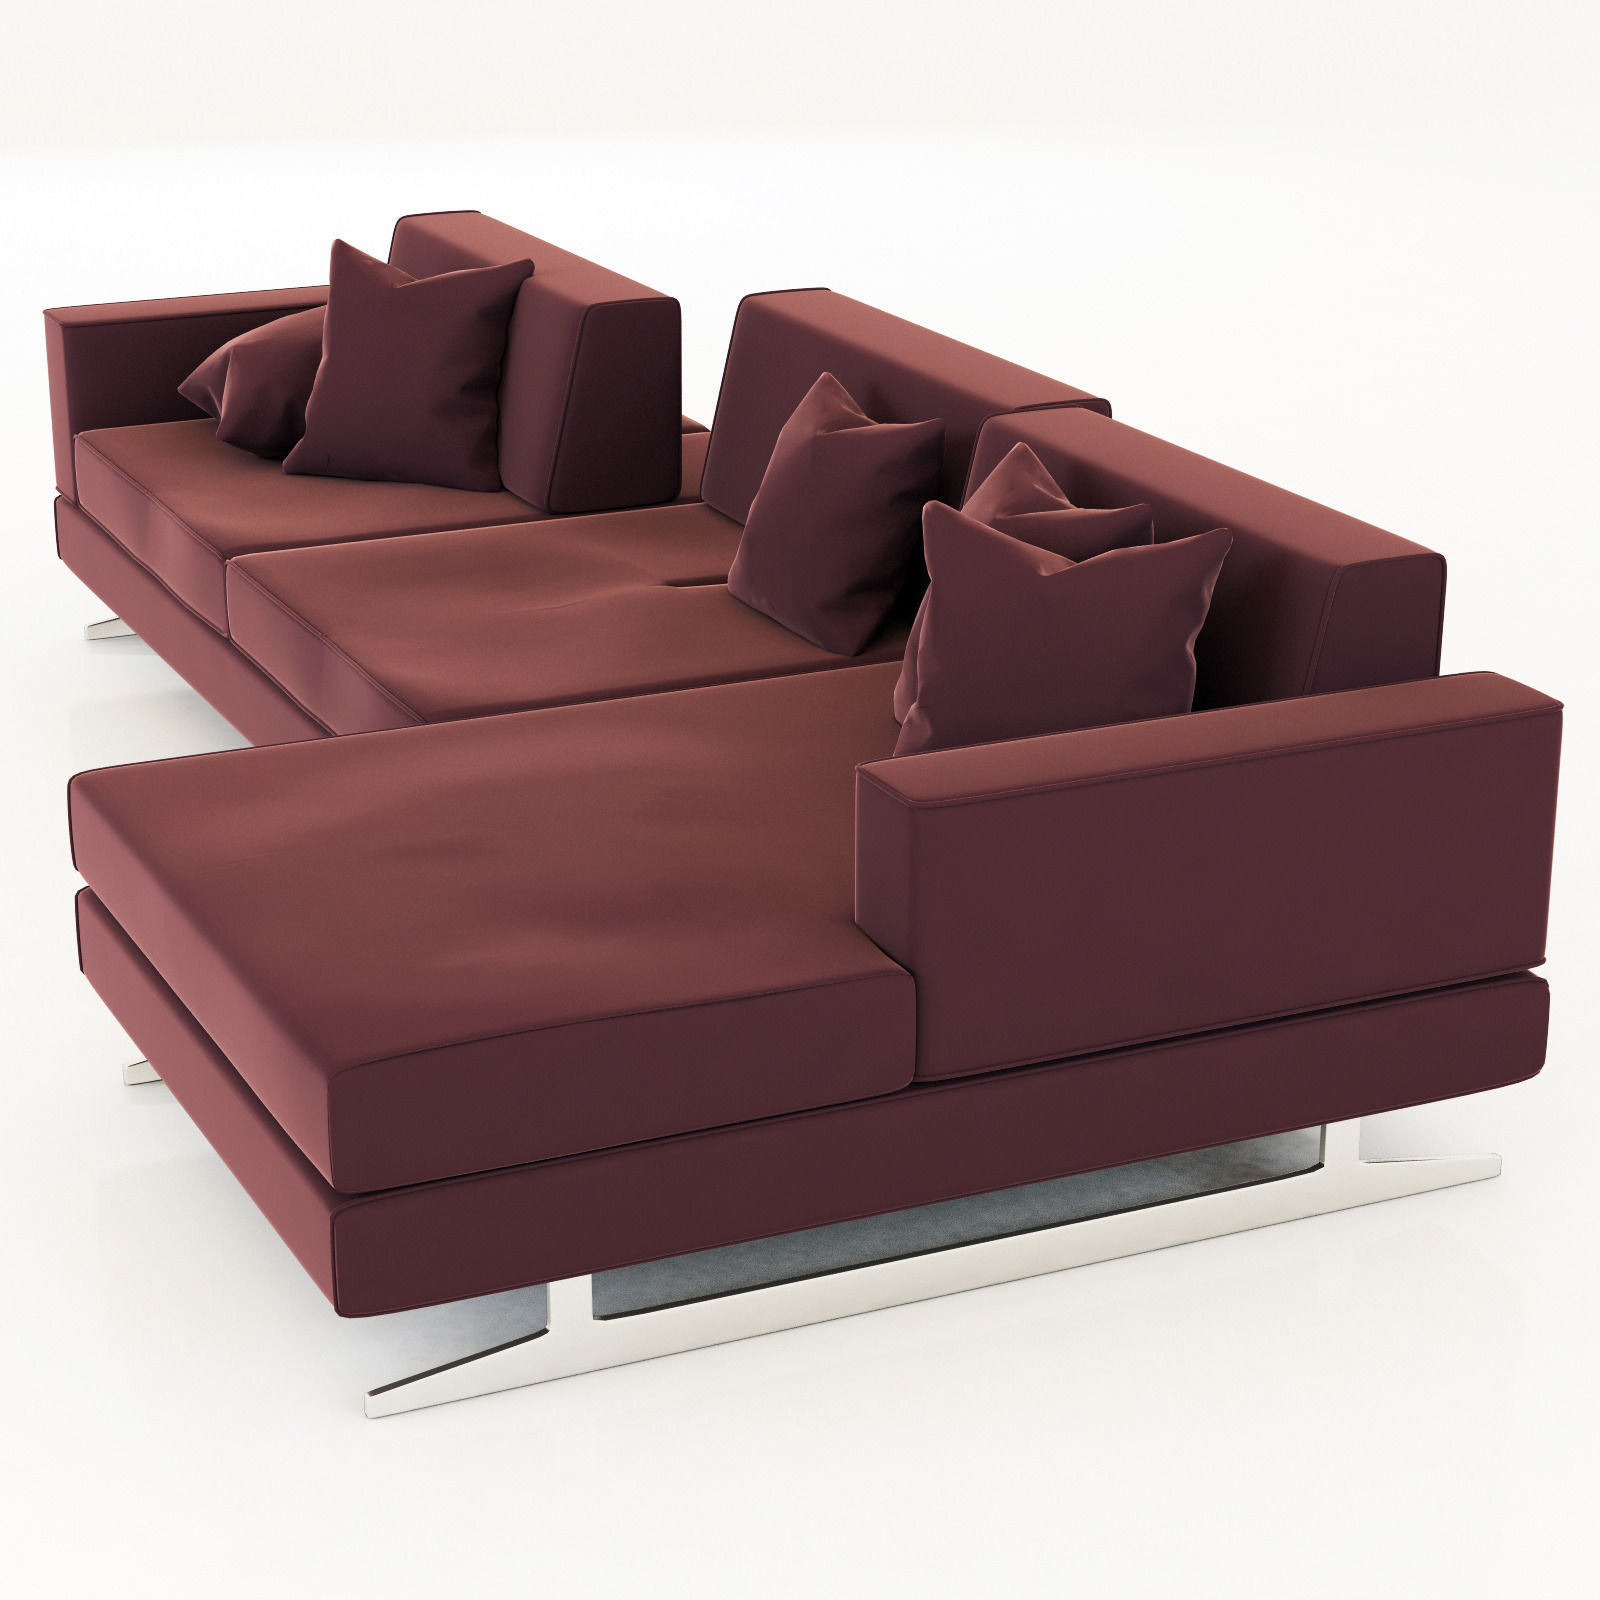 Sofa Bed Home Theater: Movie Sofa Movie Sofa